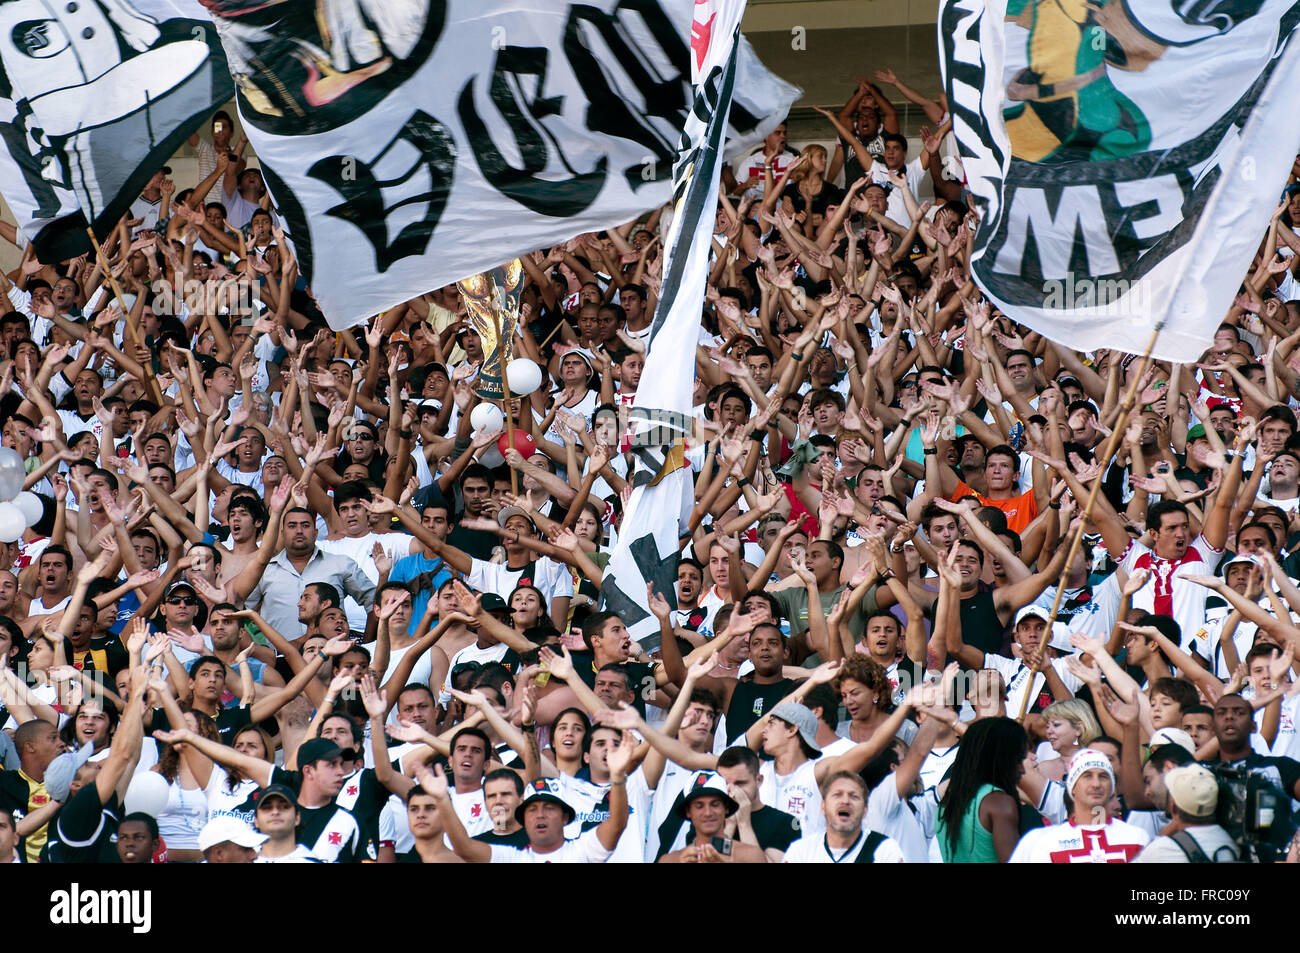 Organized fan of Vasco during the match against Flamengo - Stock Image